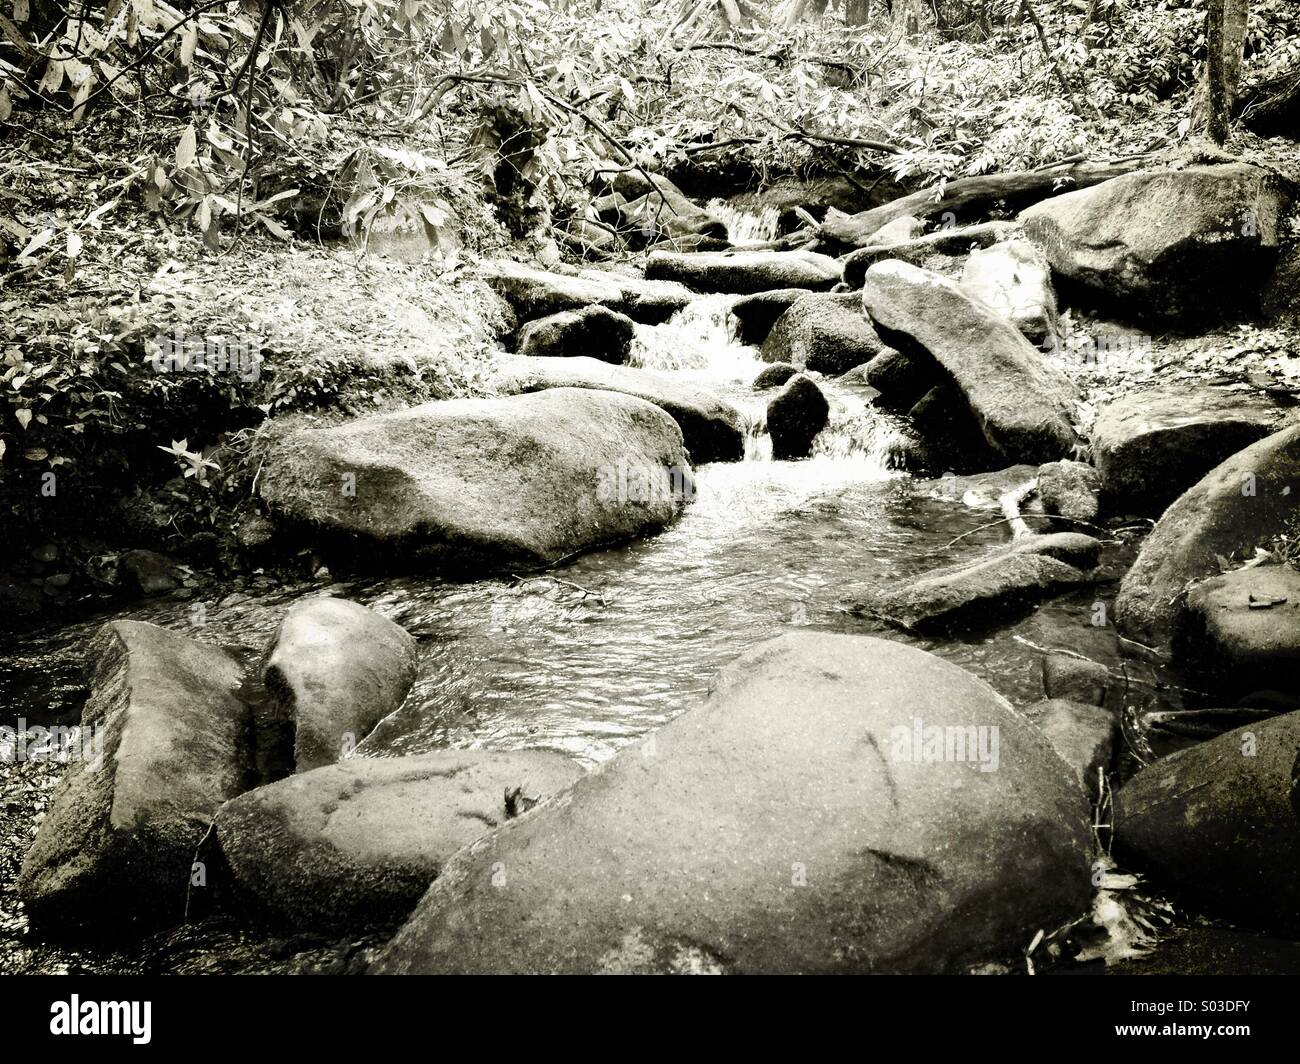 A cool mountain stream gently flows through a lush unspoiled forest. - Stock Image